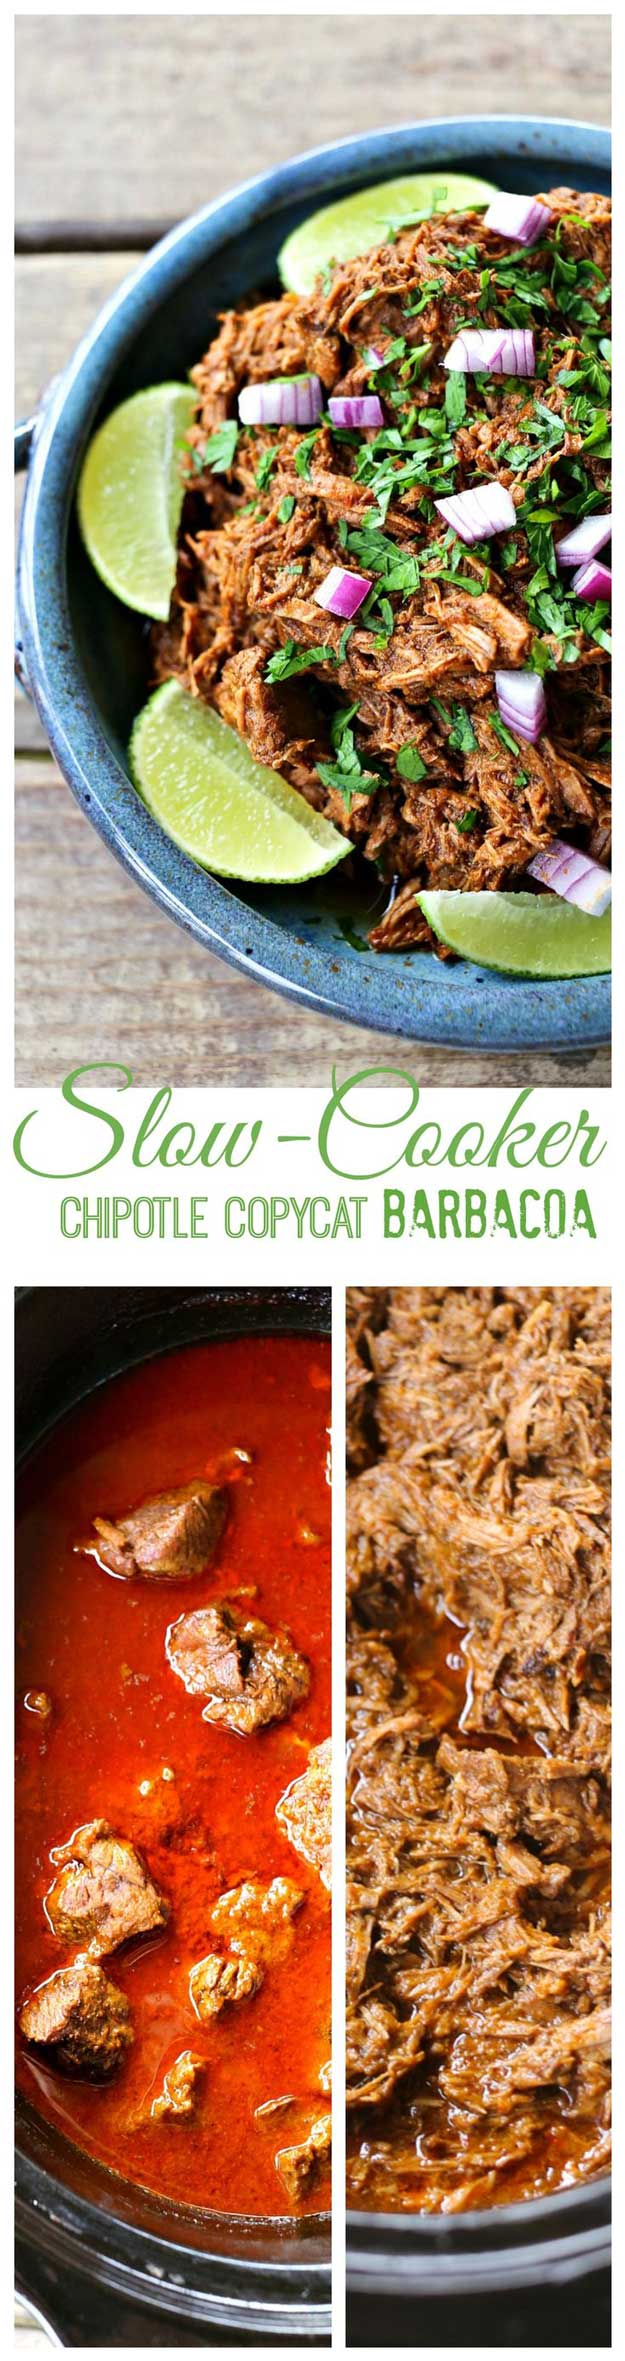 Copycat Recipes From Top Restaurants. Best Recipe Knockoffs from Chipotle, Starbucks, Olive Garden, Cinabbon, Cracker Barrel, Taco Bell, Cheesecake Factory, KFC, Mc Donalds, Red Lobster, Panda Express | Copycat Chipotle Barbacoa Recipe http://diyjoy.com/copycat-recipes